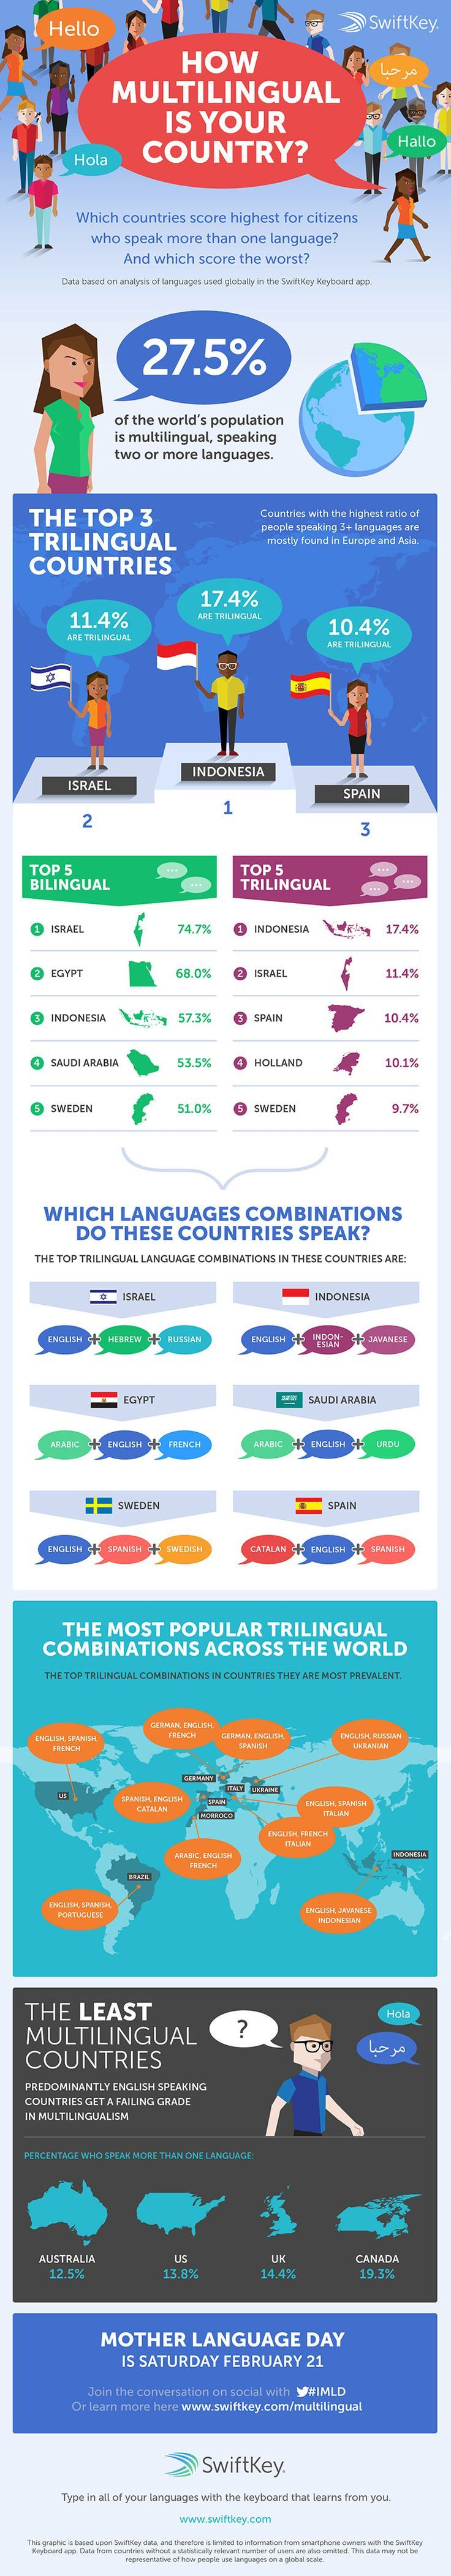 Educational infographic : Multilingual Countries  though they haven't considered Switzerland (5 langu